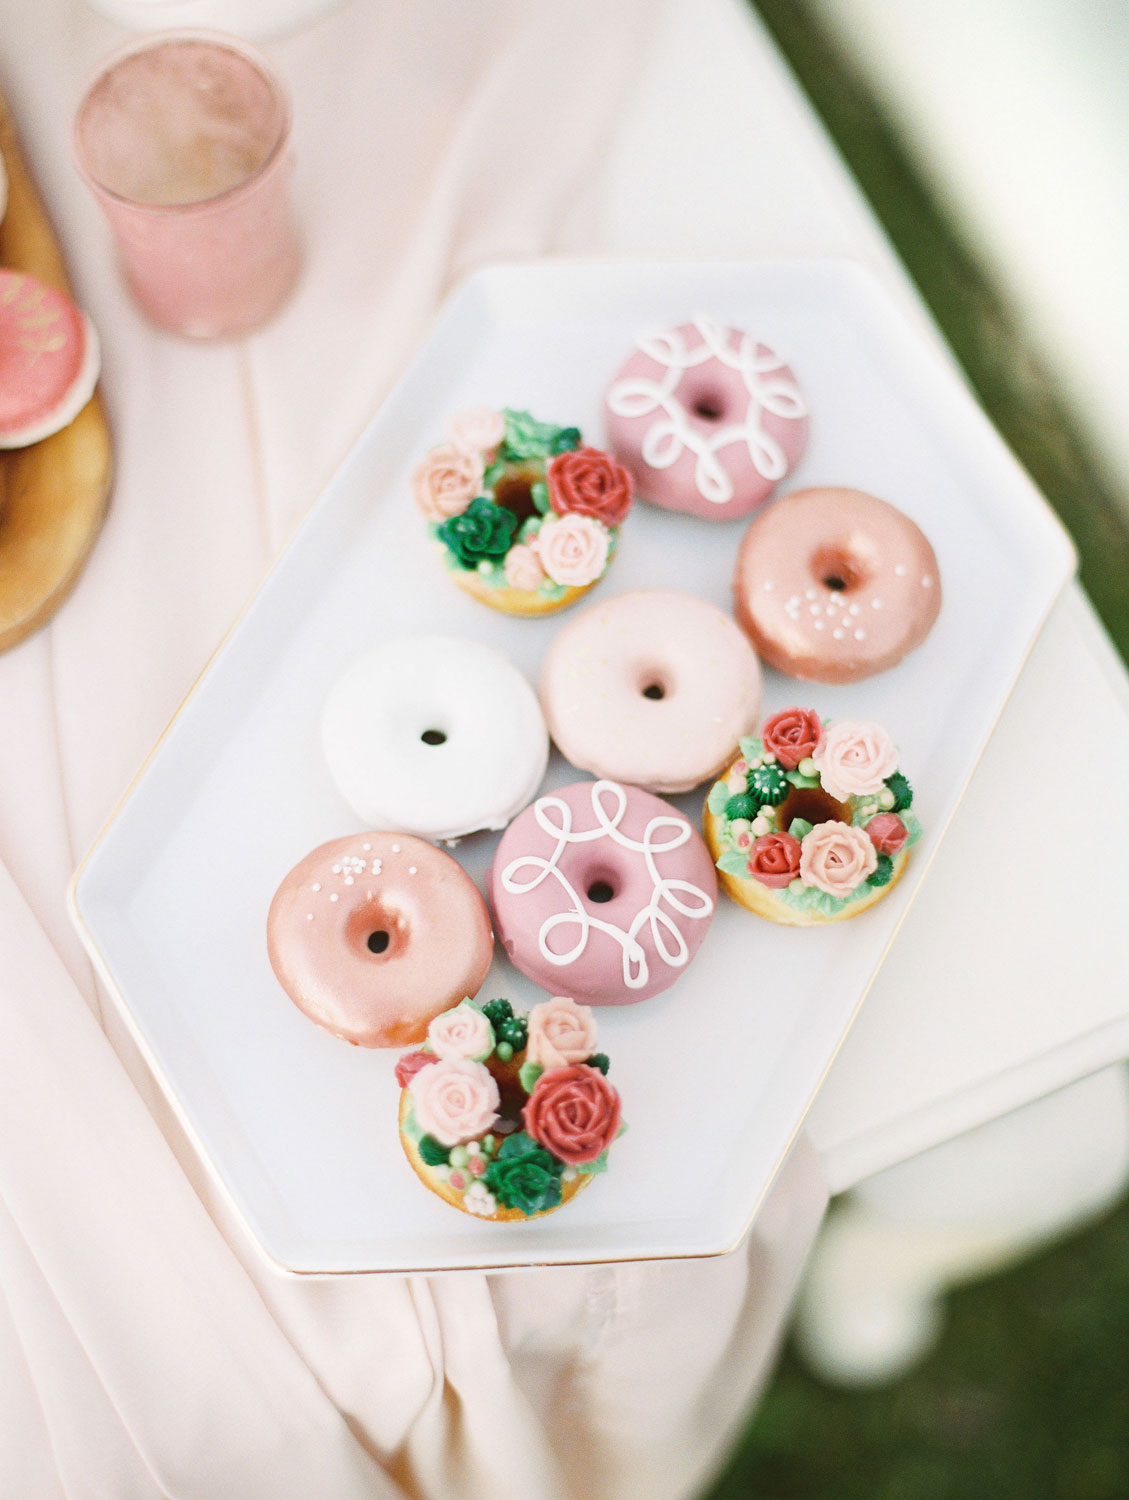 Pink-and-gold-wedding-styling-donuts-at-wedding.jpg